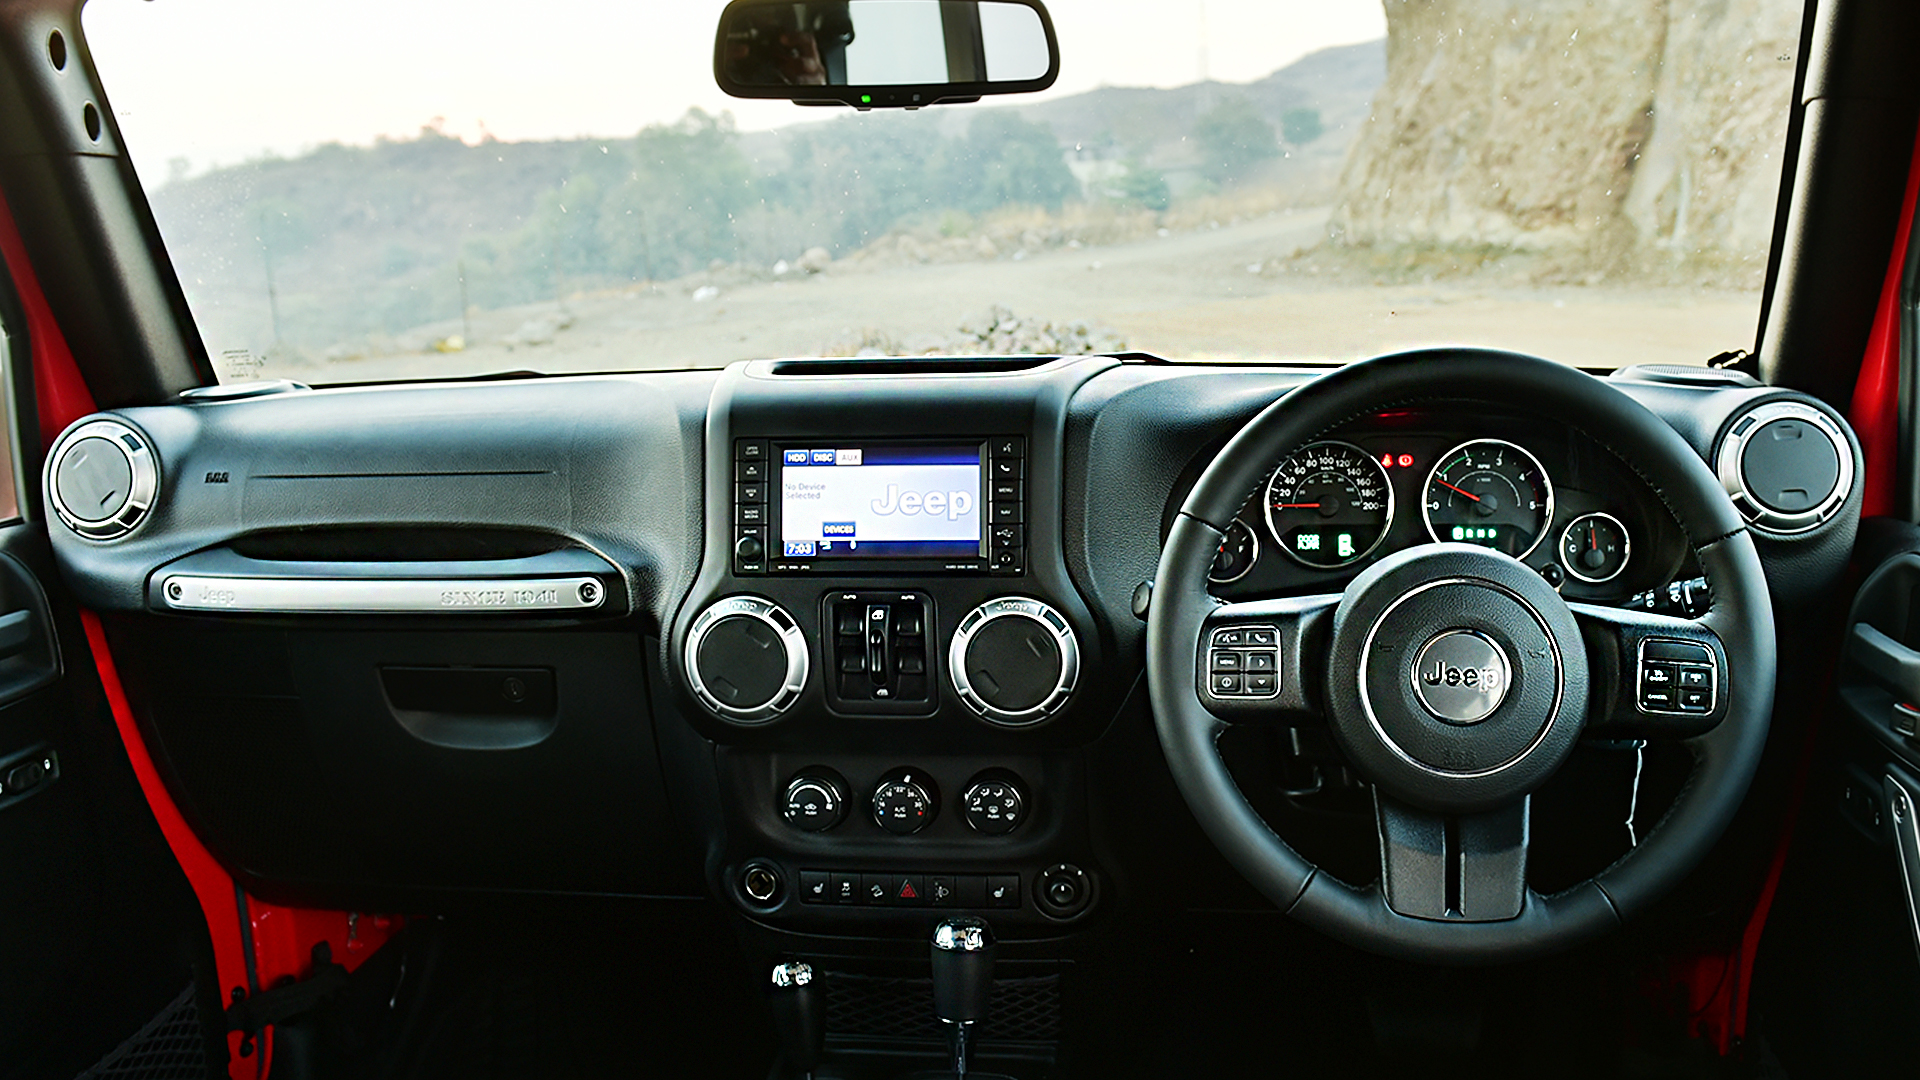 Jeep Wrangler 2016 Unlimited Interior Car Photos Overdrive